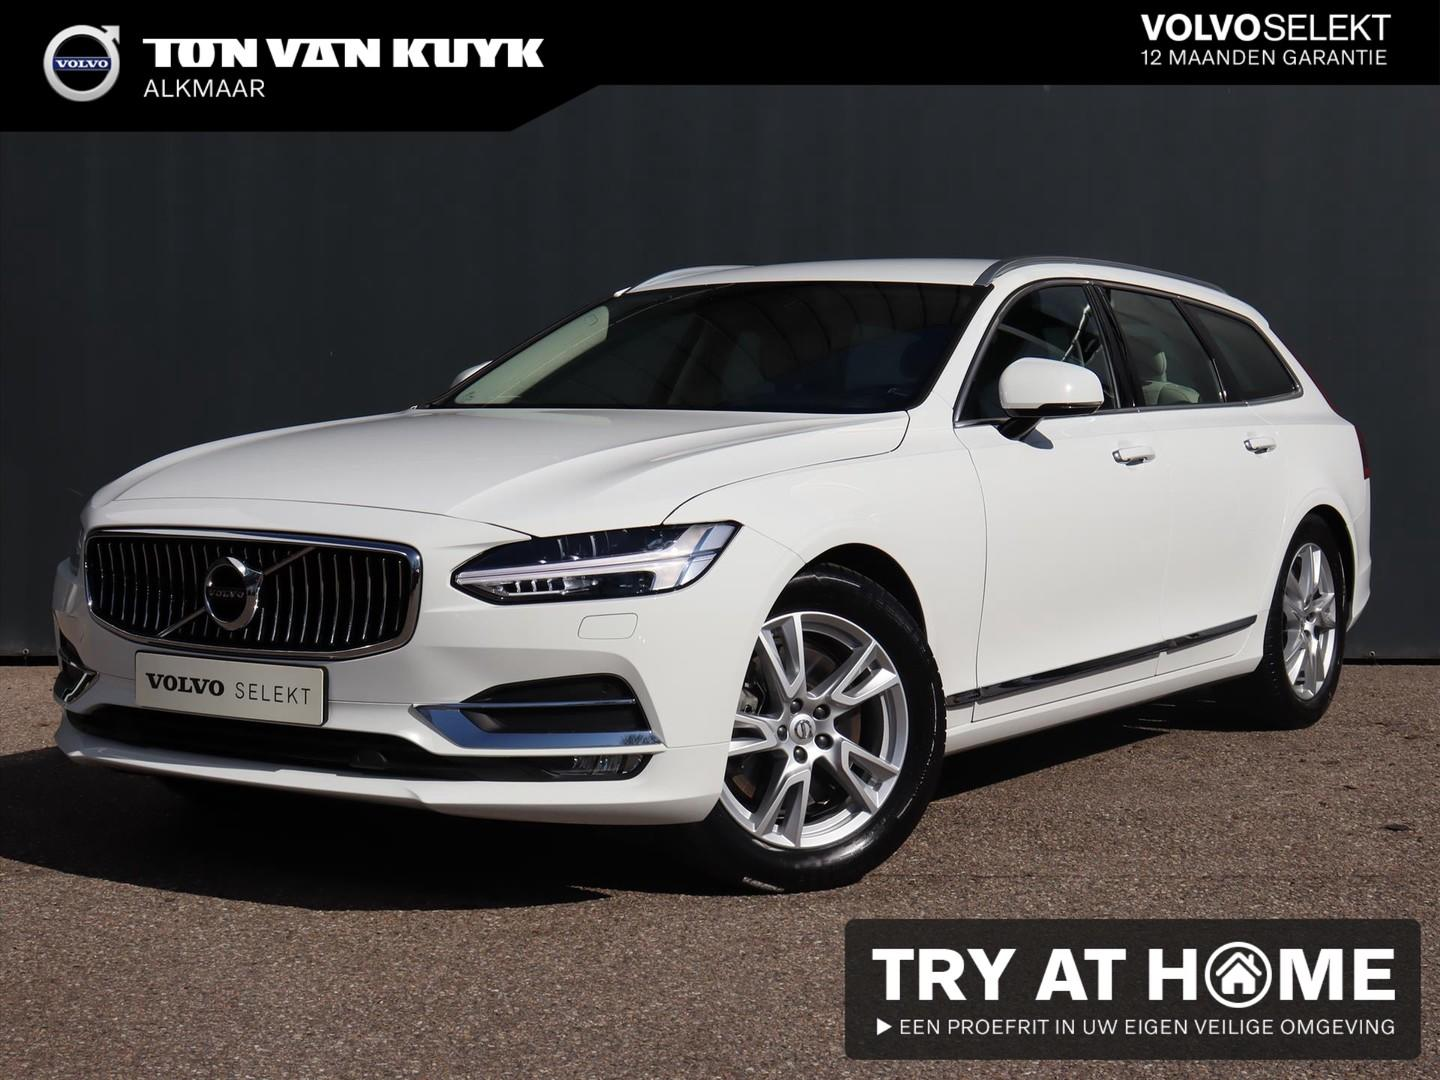 Volvo V90 T4 190pk automaat inscription / intellisafe / winter / scandinavian line / trekhaak